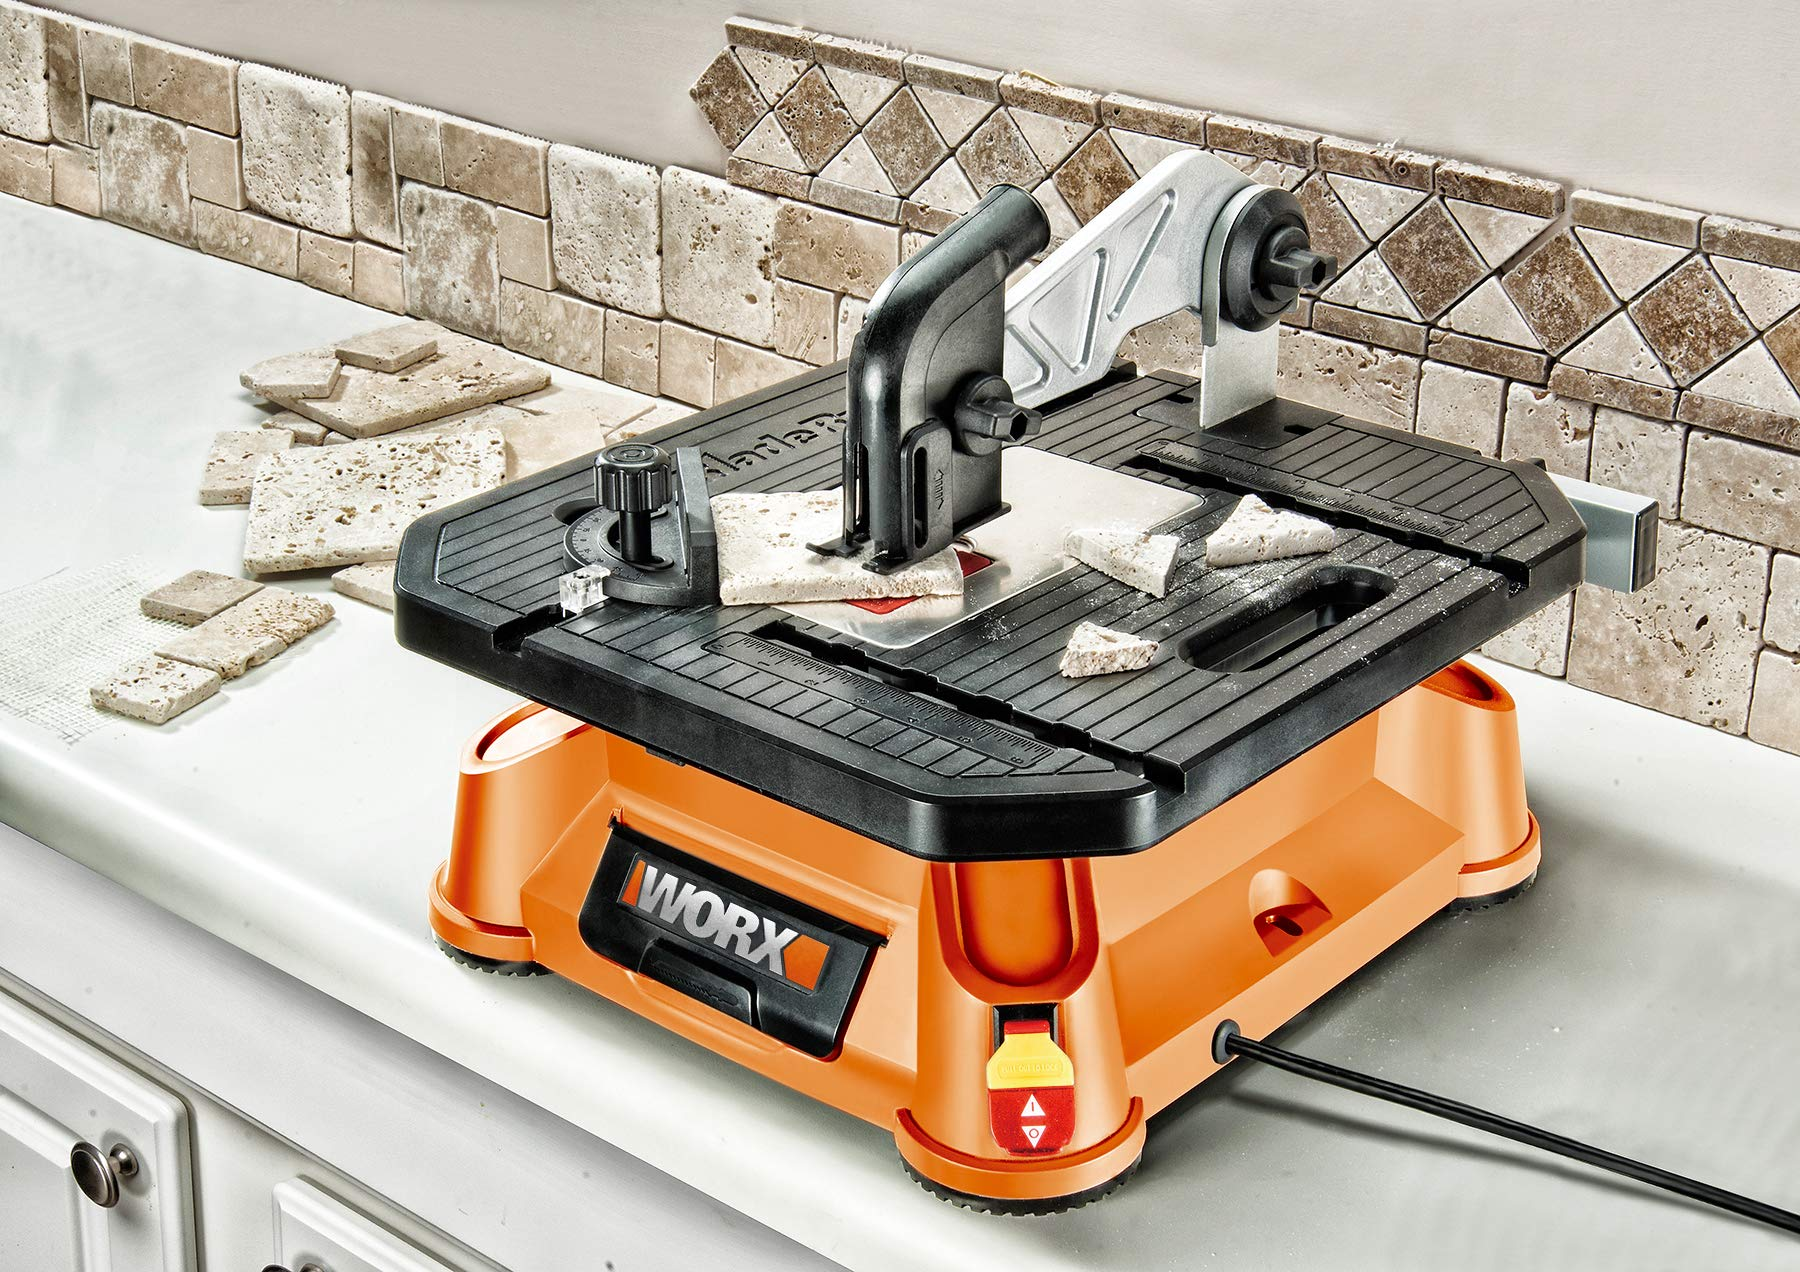 WORX WX572L BladeRunner x2 Portable Tabletop Saw by WORX